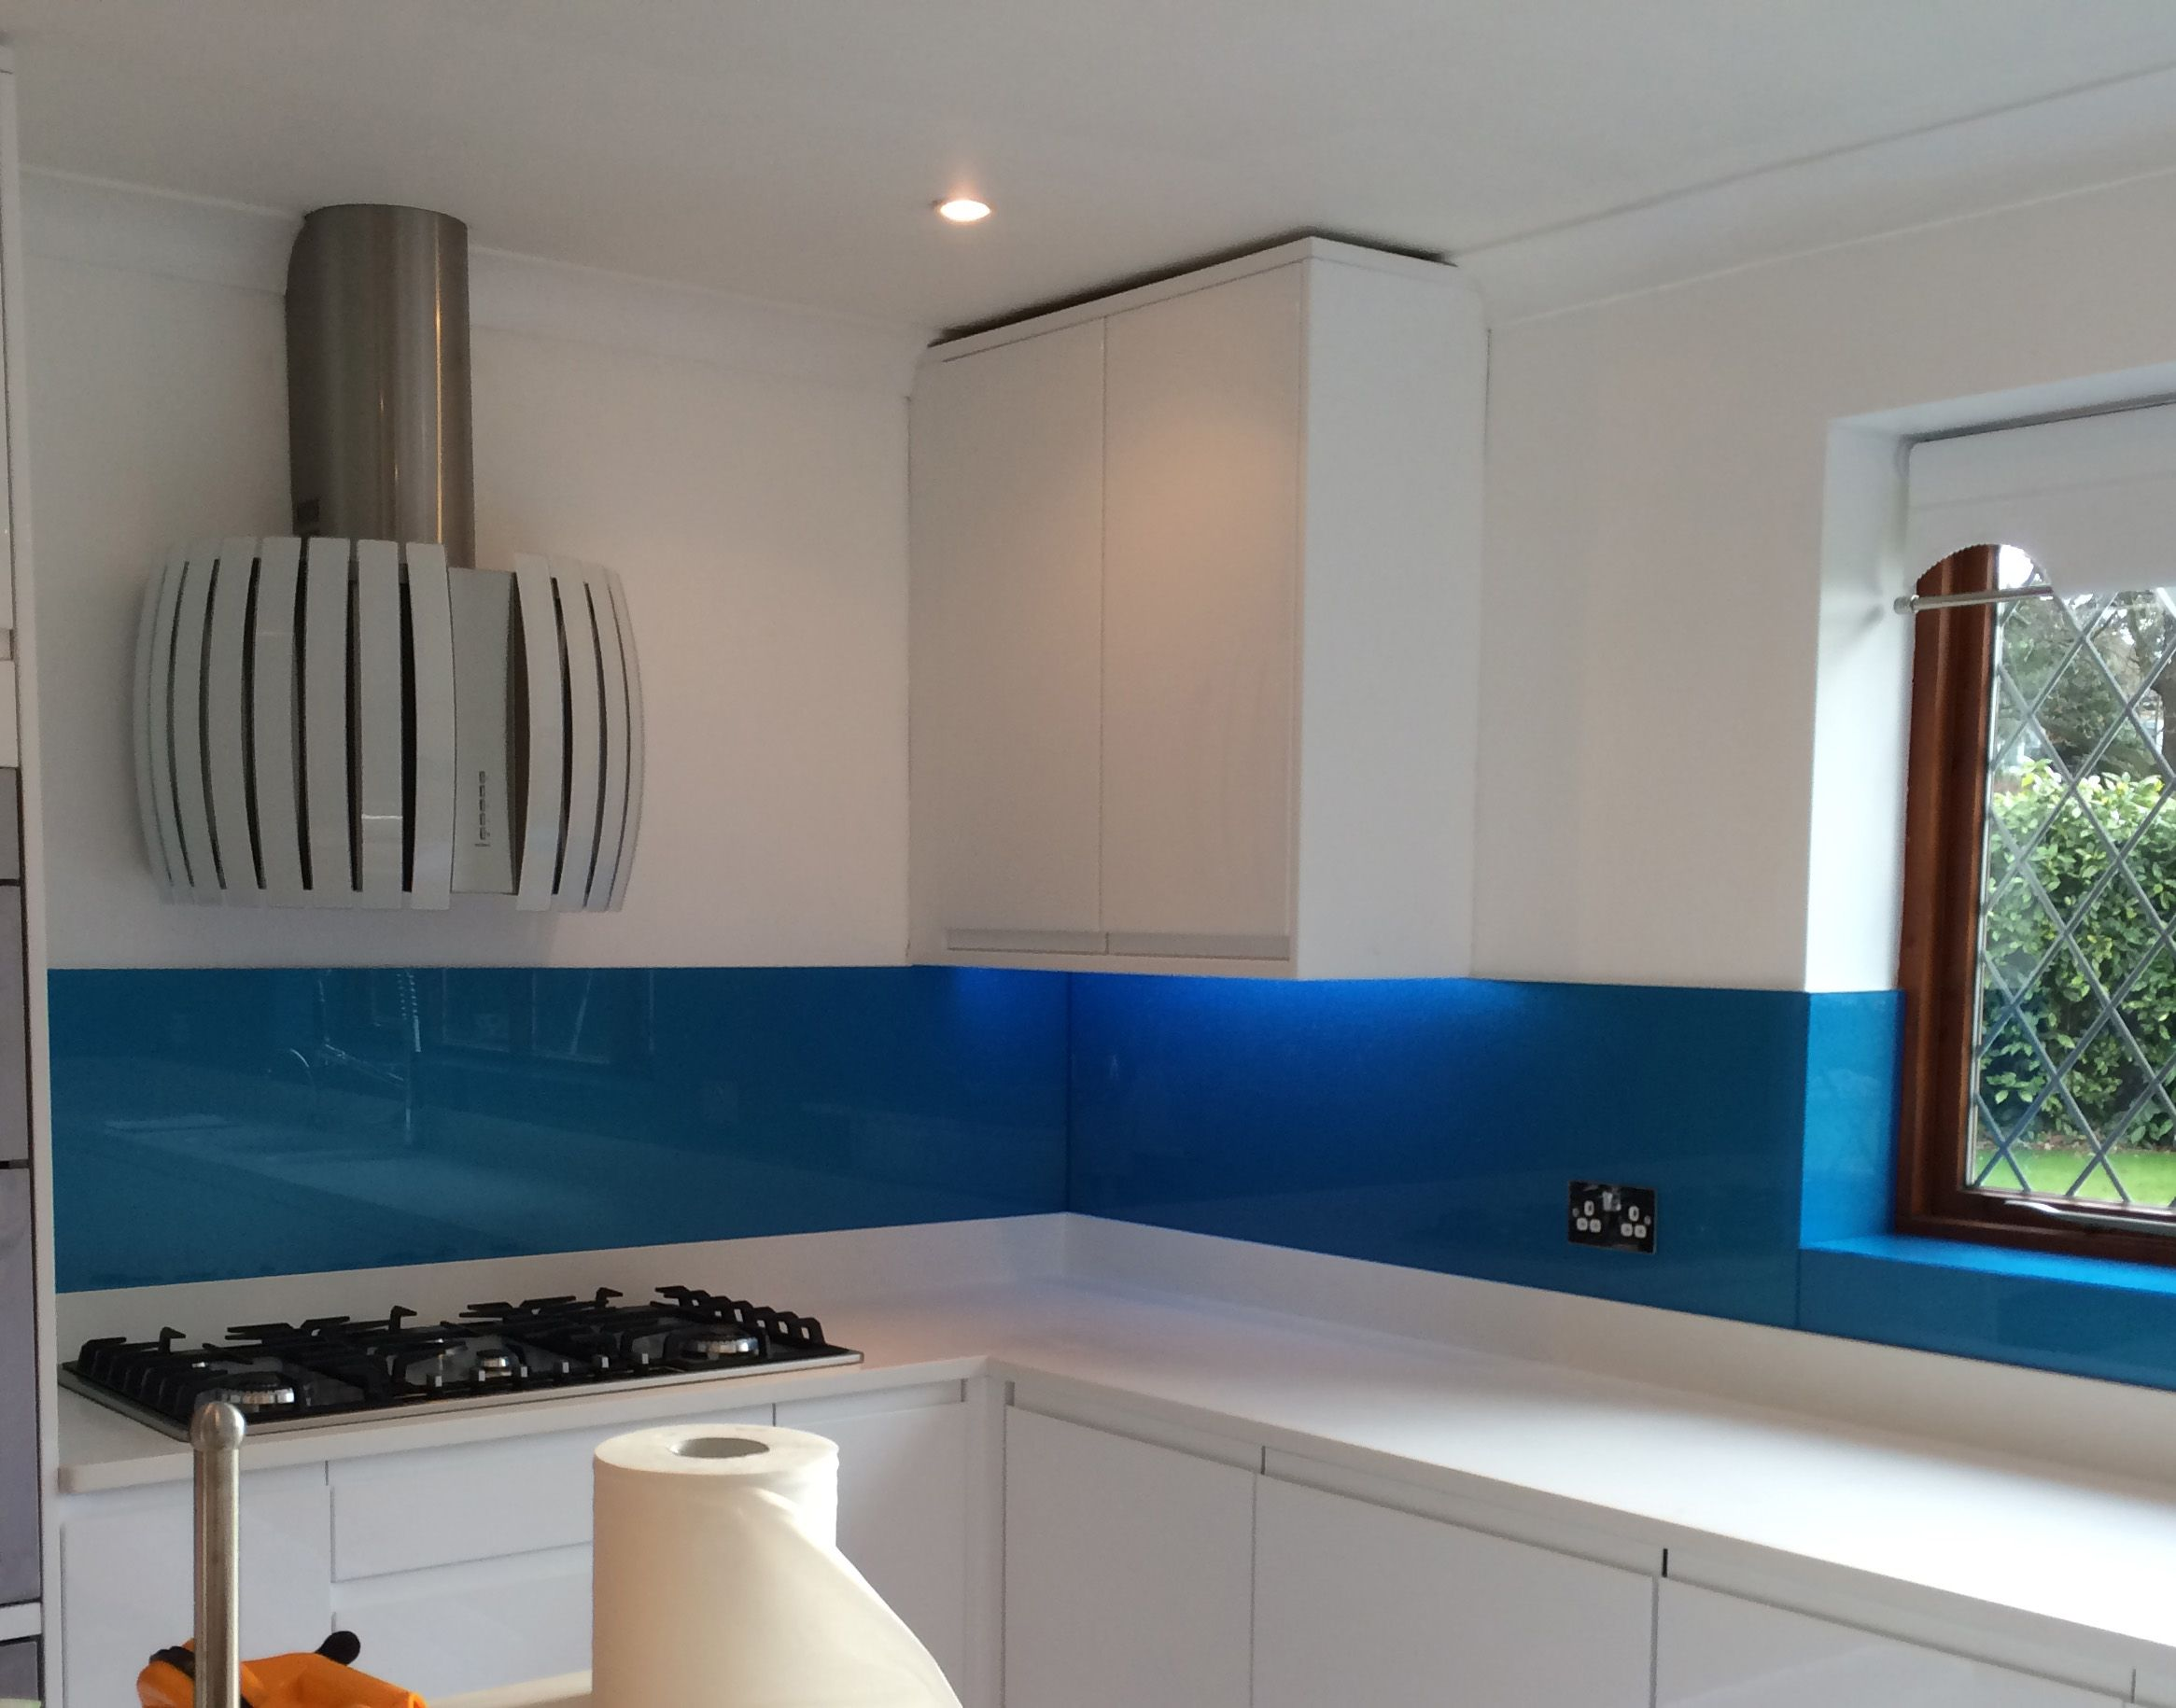 Glass splashbacks for bathroom sinks - Blue Glass Splashback Fitted By Easy Glass Splashbacks Showing Window Reveals